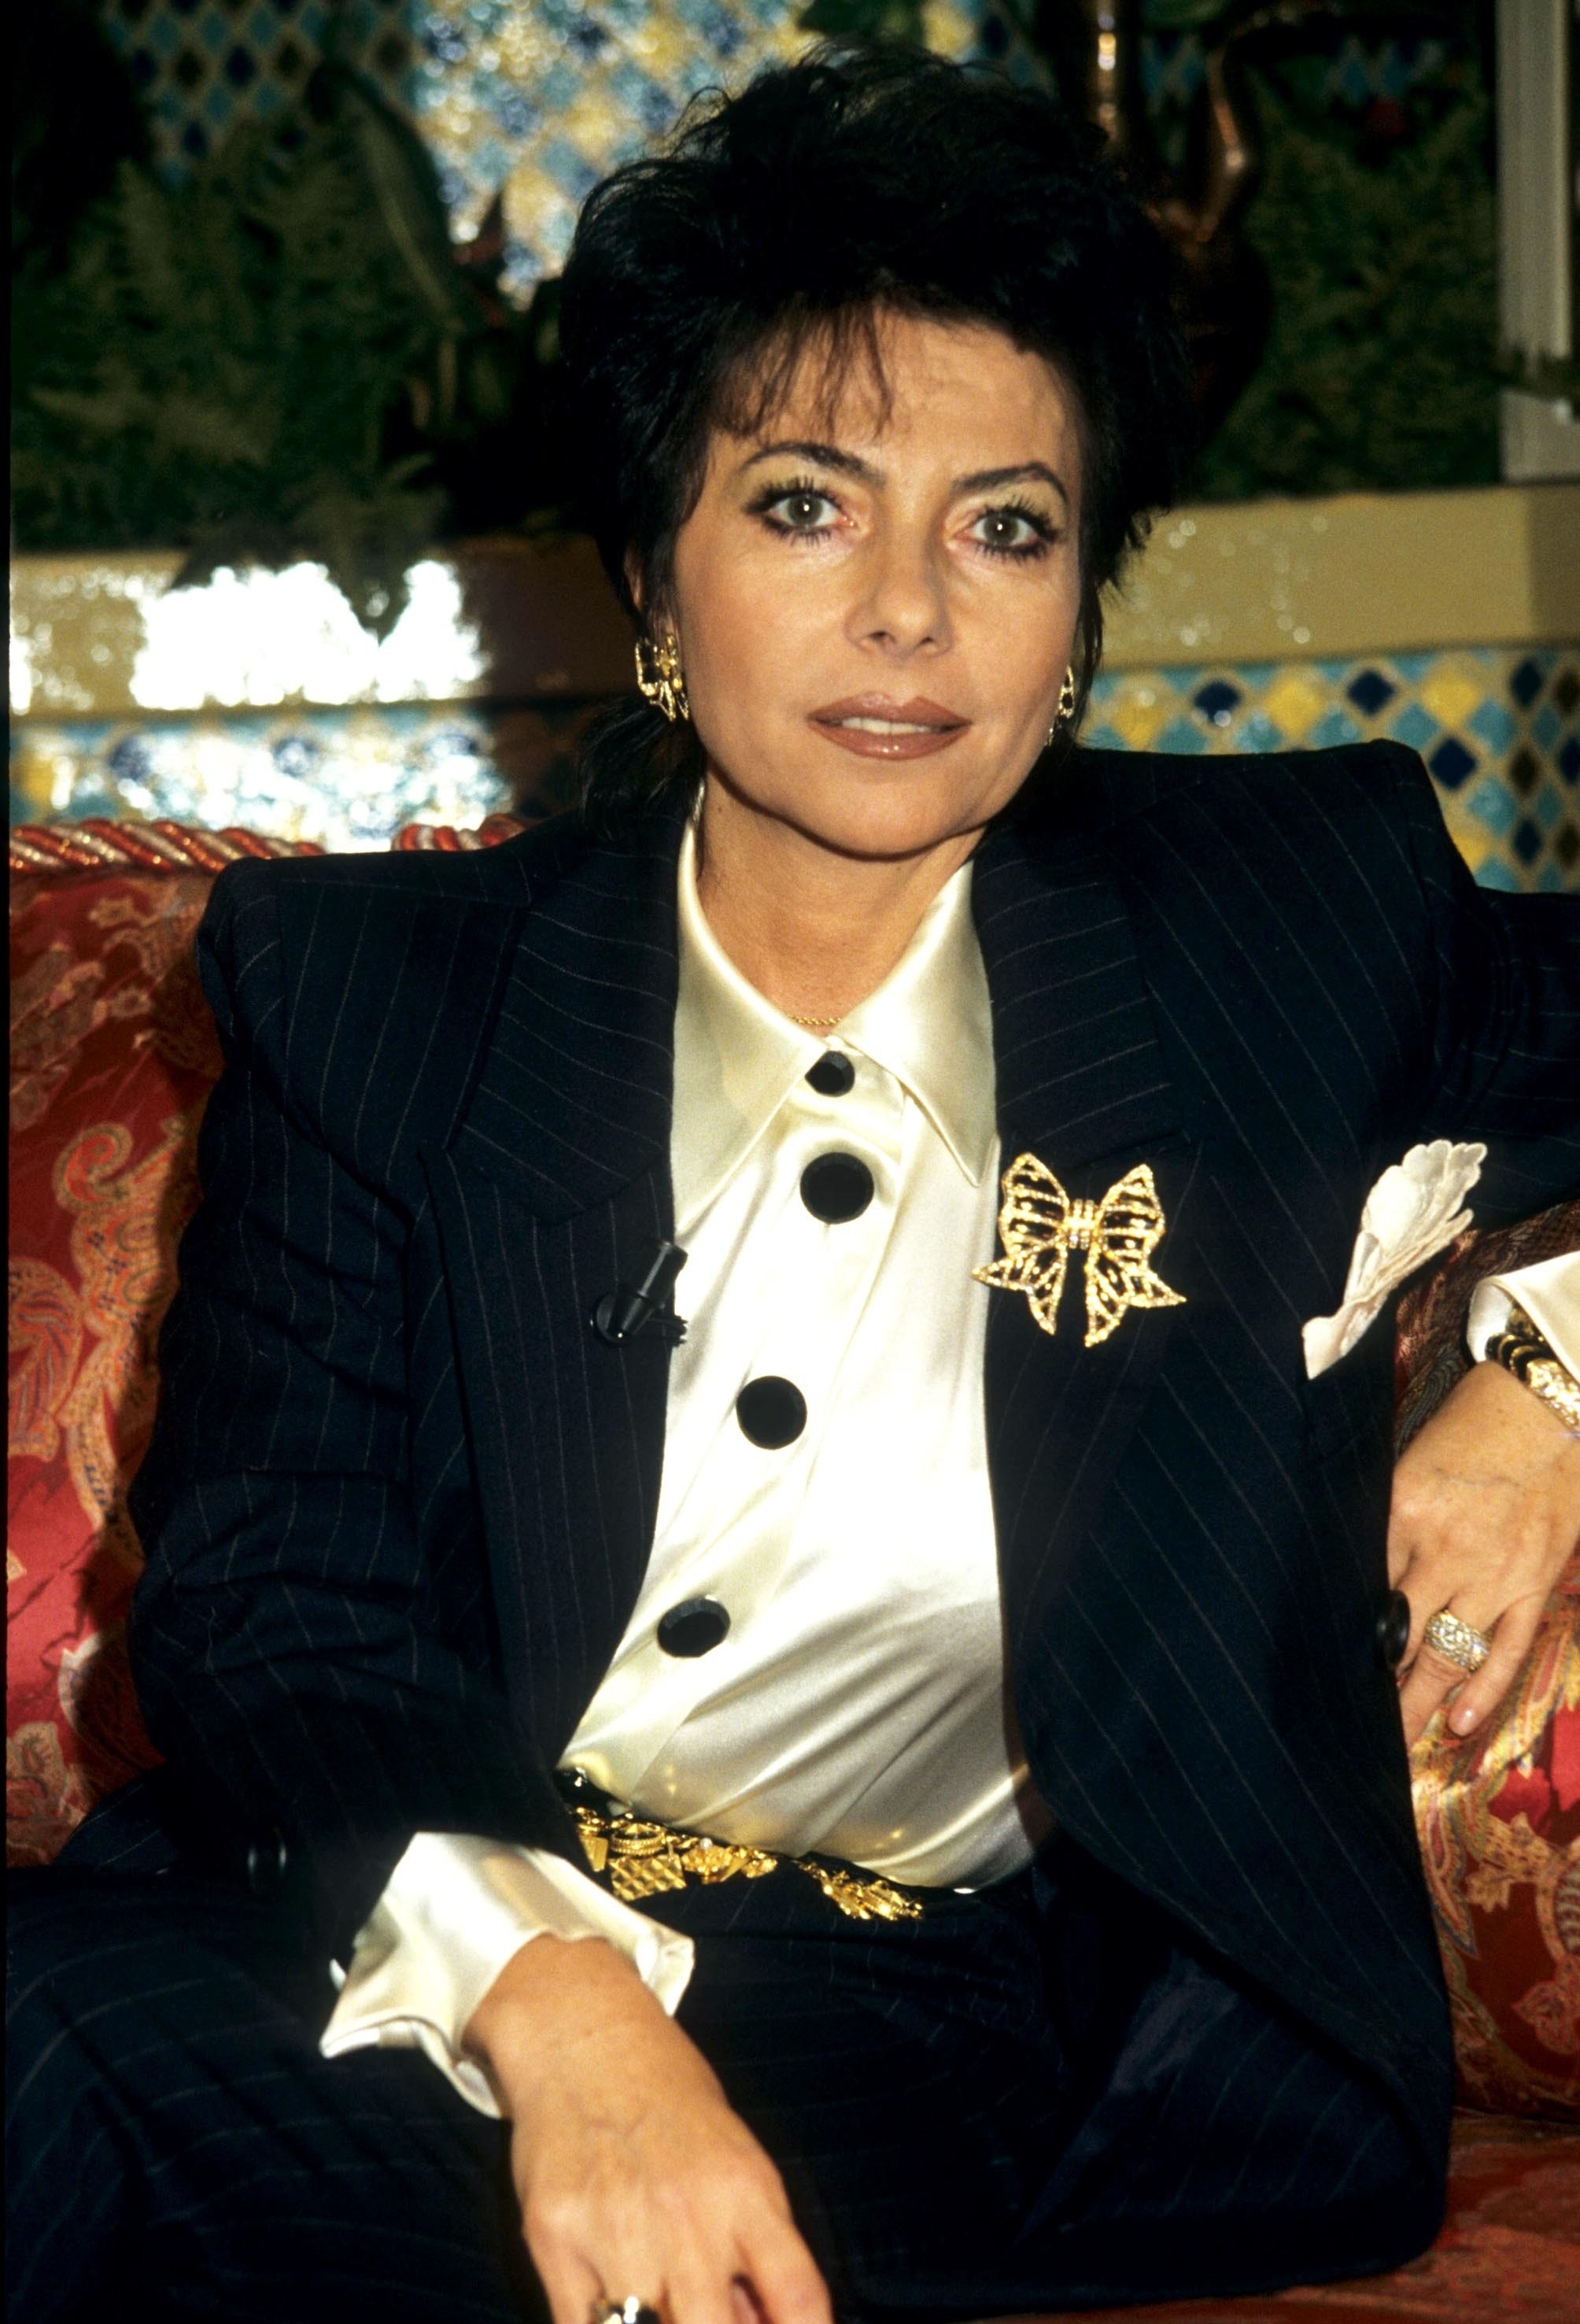 Patrizia wearing a suit as she sits on a couch